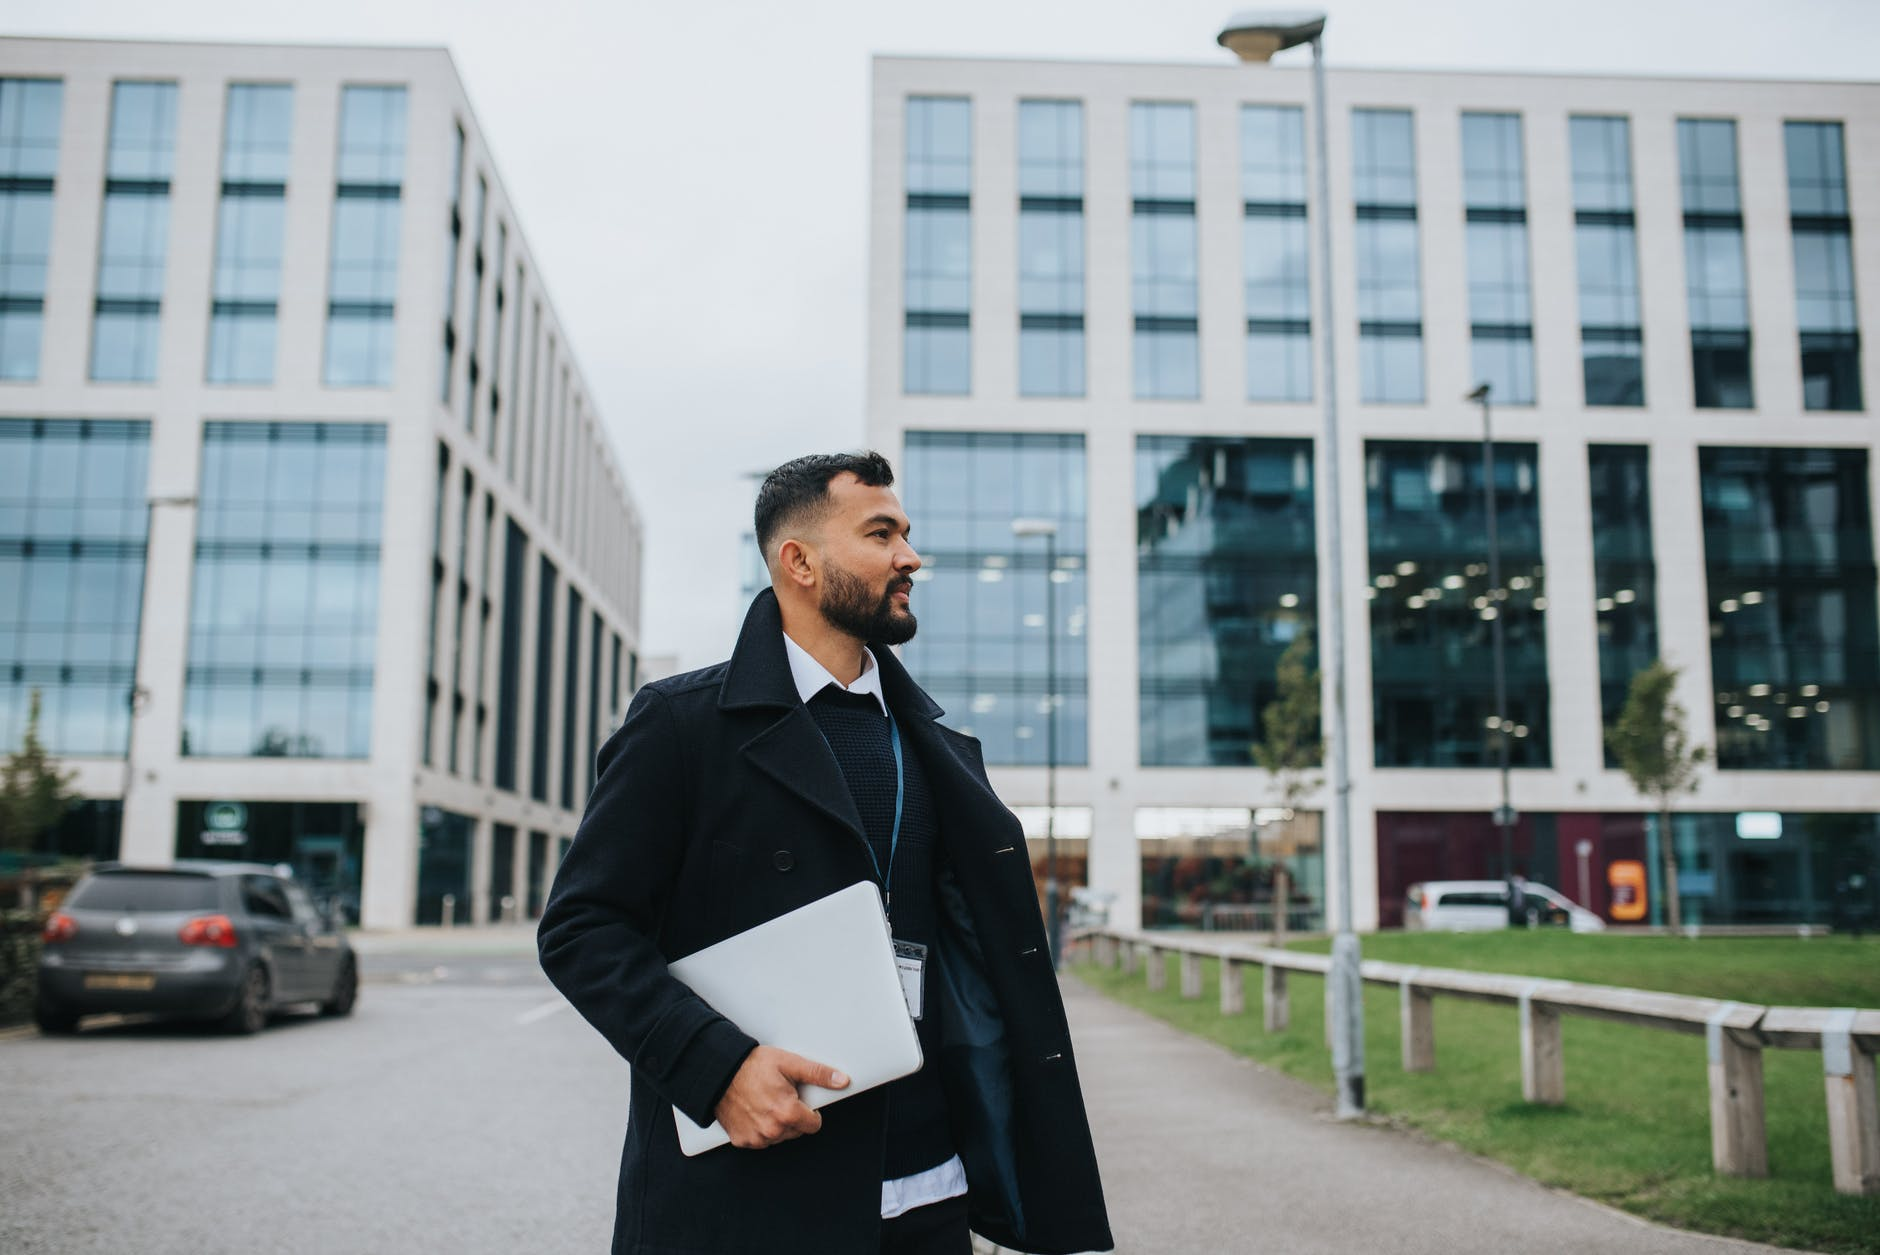 trendy ethnic office employee with laptop on urban road